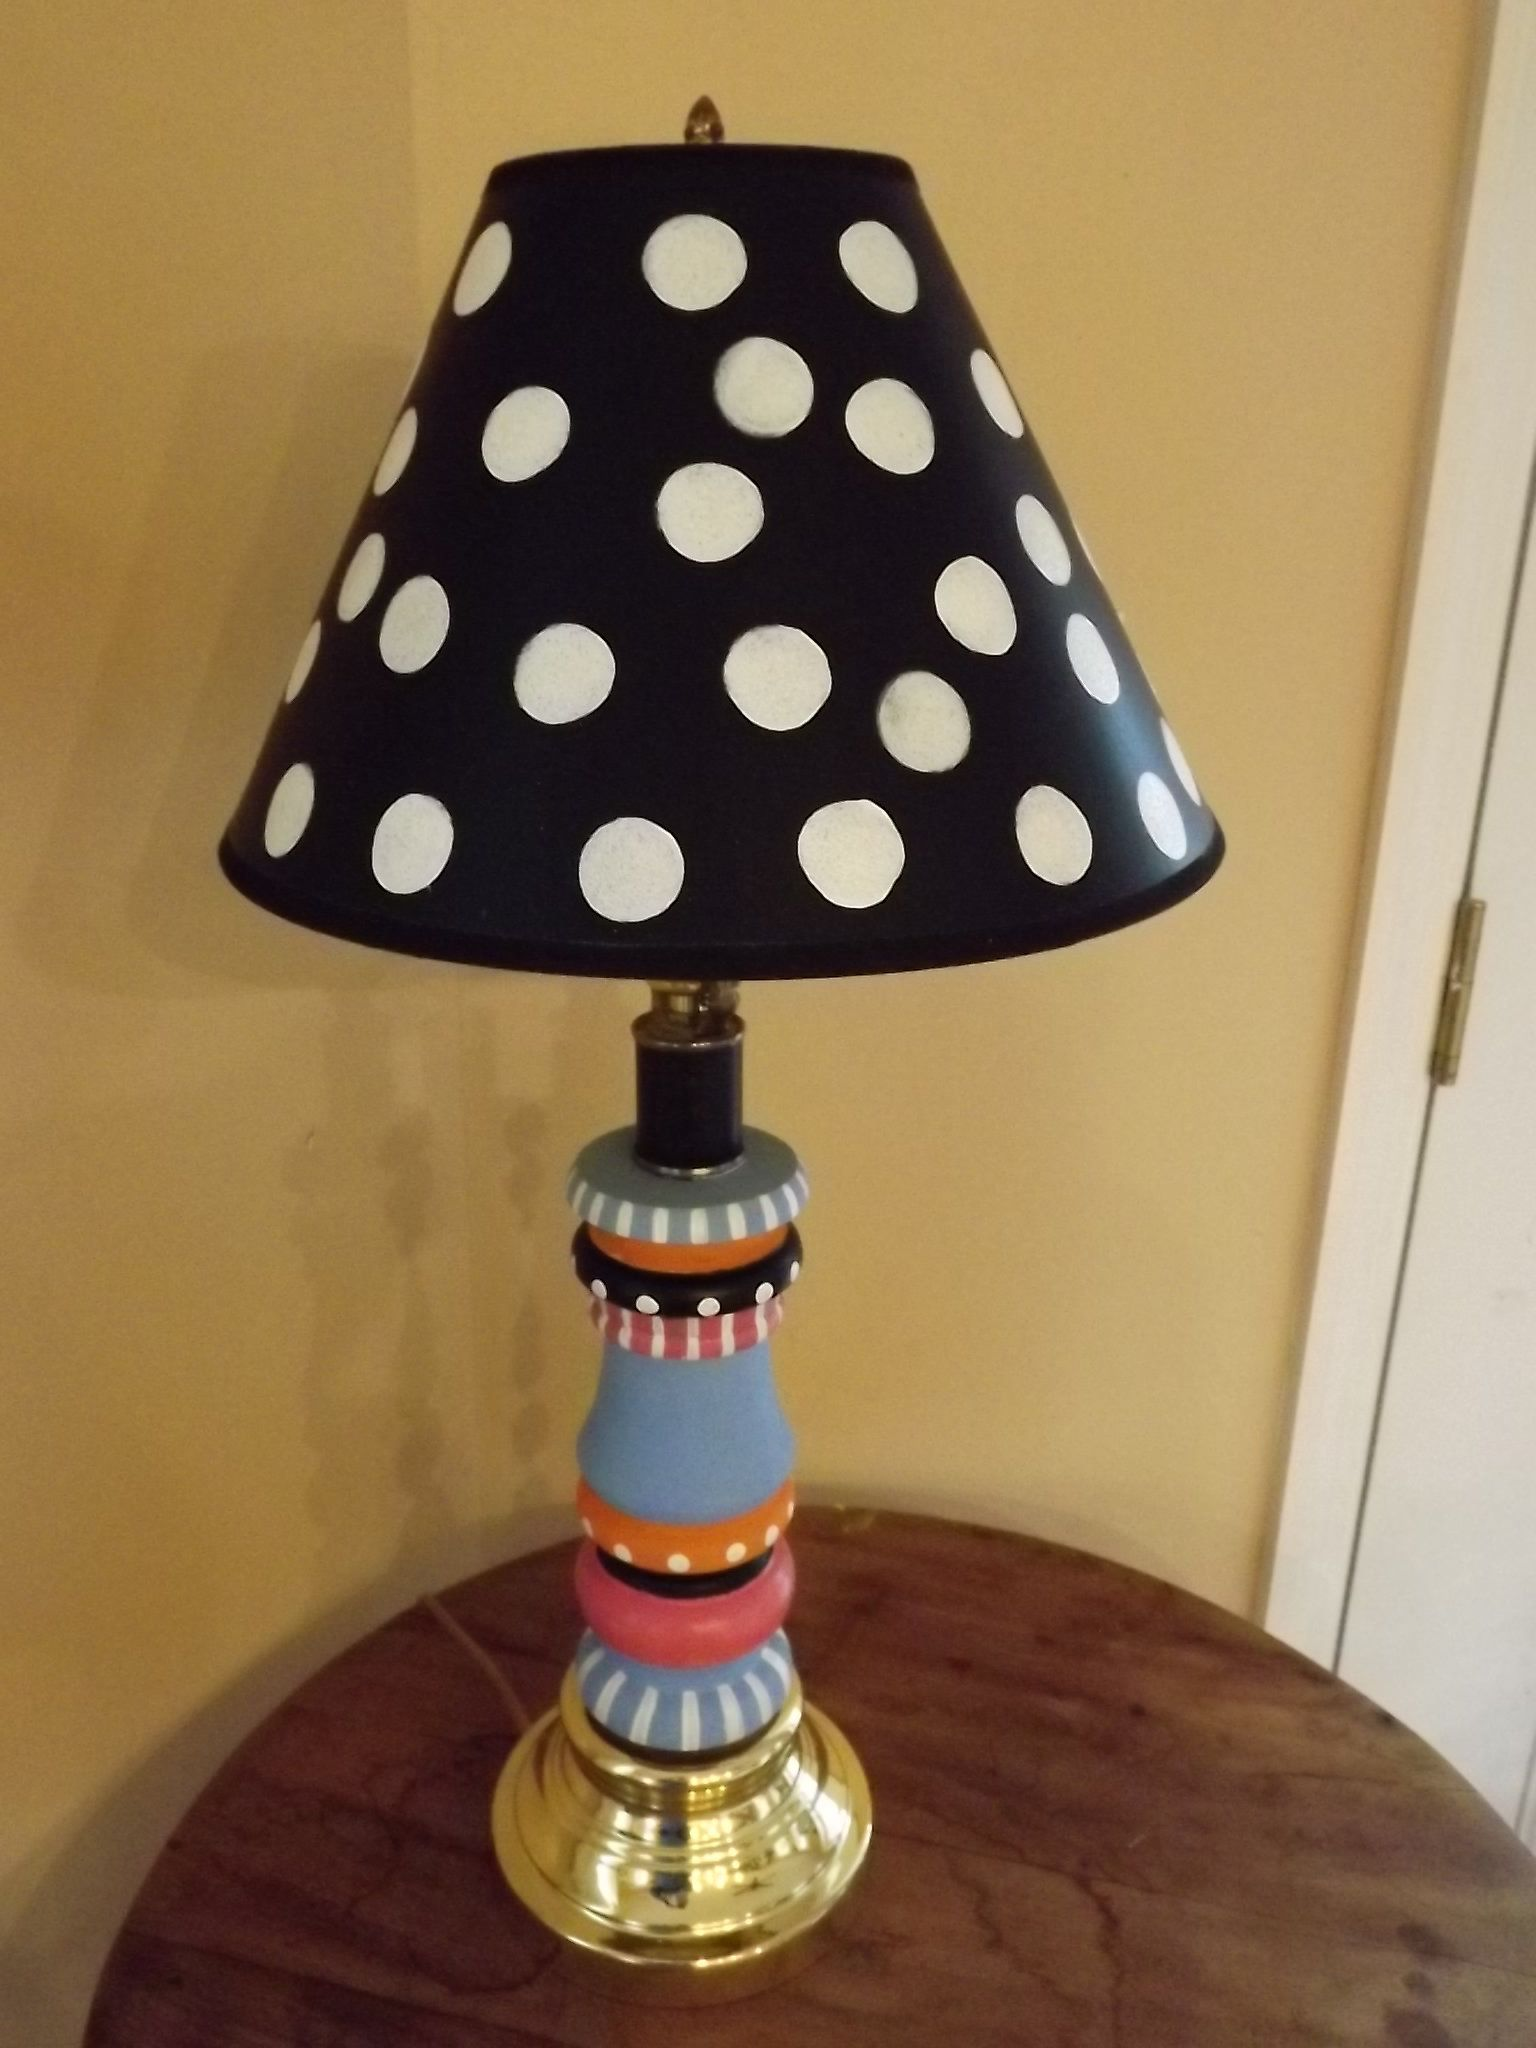 Whimsical Lamp Hand Painted Lamp Home Decor Lighting Table Lamps Home And Living Painting Lamps Table Lamp Painting